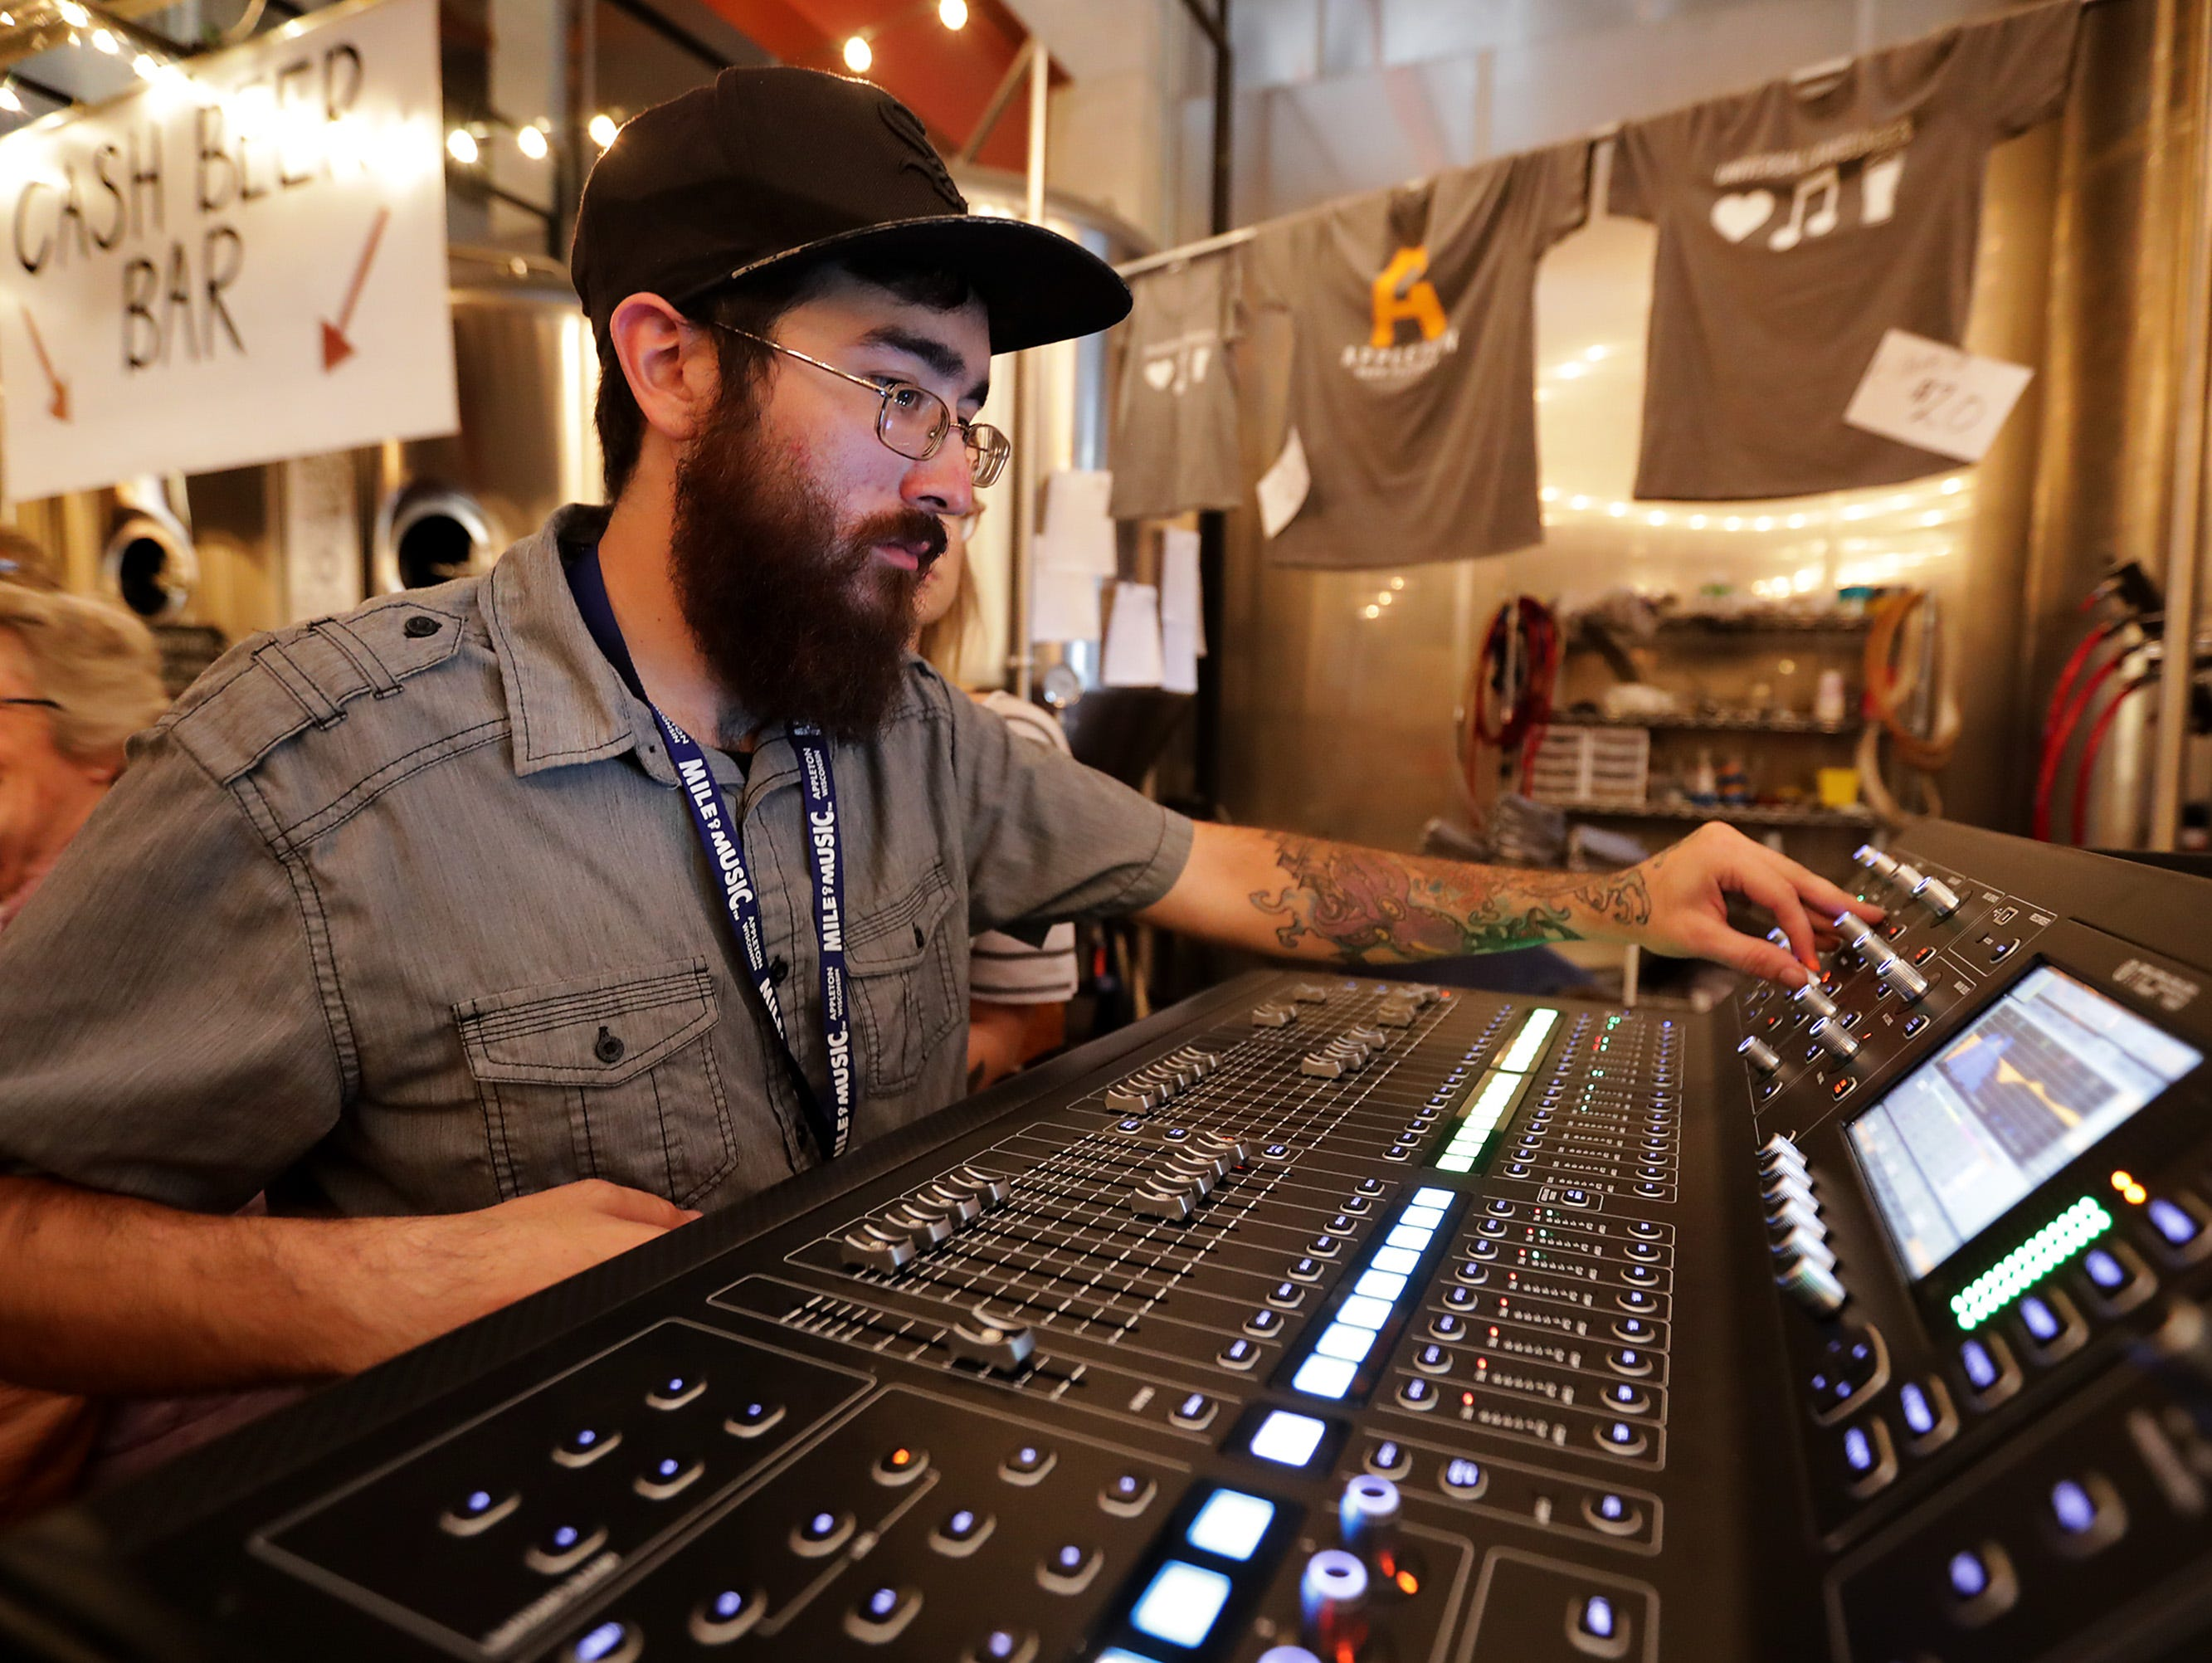 Marcus Granados works a soundboard during the Mile of Music festival Thursday, August 2, 2018, in Appleton, Wis. Wm. Glasheen/USA TODAY NETWORK-Wisconsin